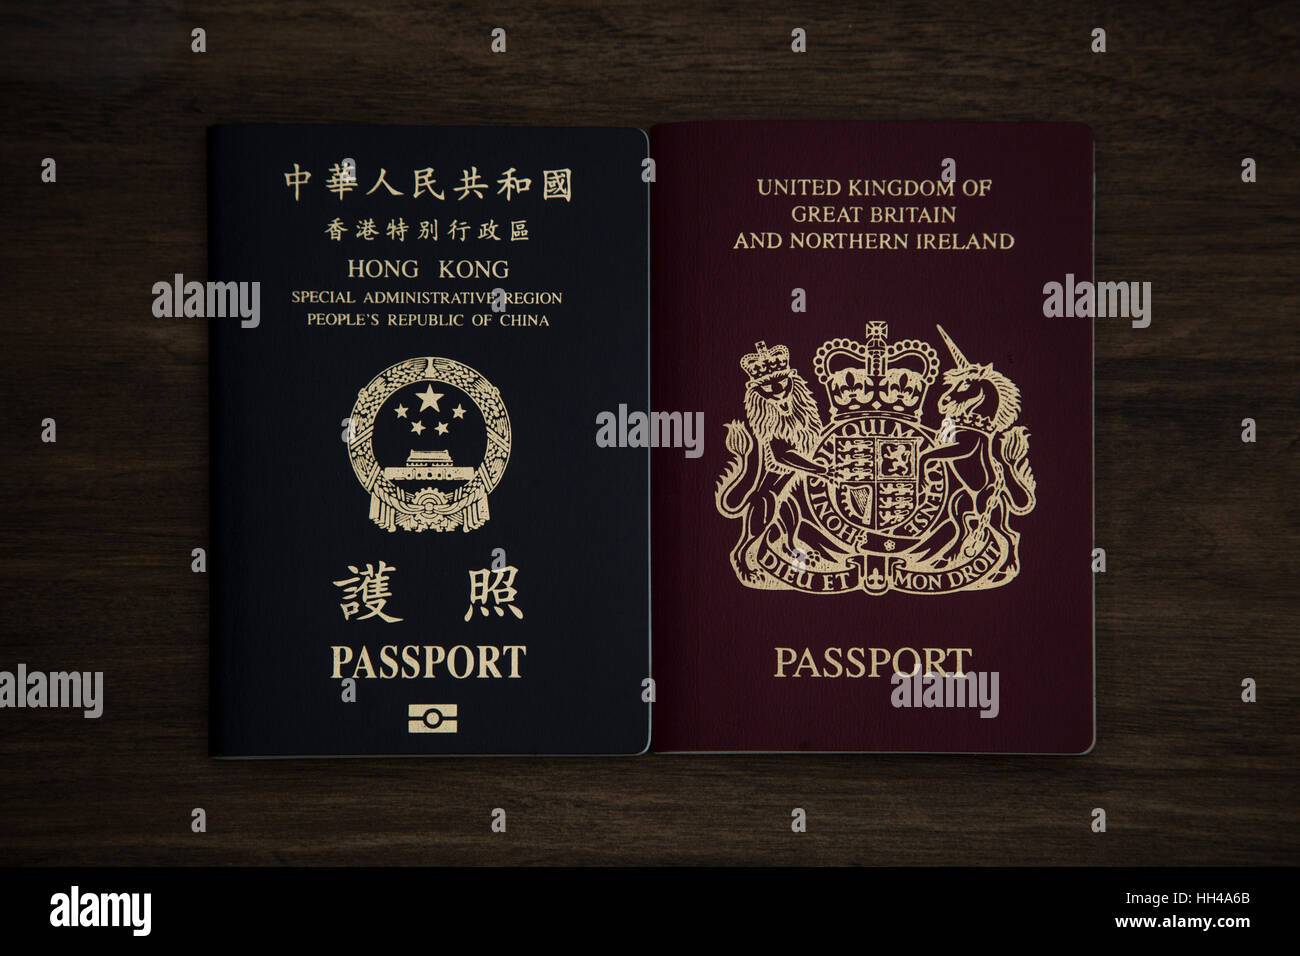 Hong Kong. 16th Jan, 2017. The picture shows the Hong Kong (HKSAR) passport and the British passport on the desk. - Stock Image